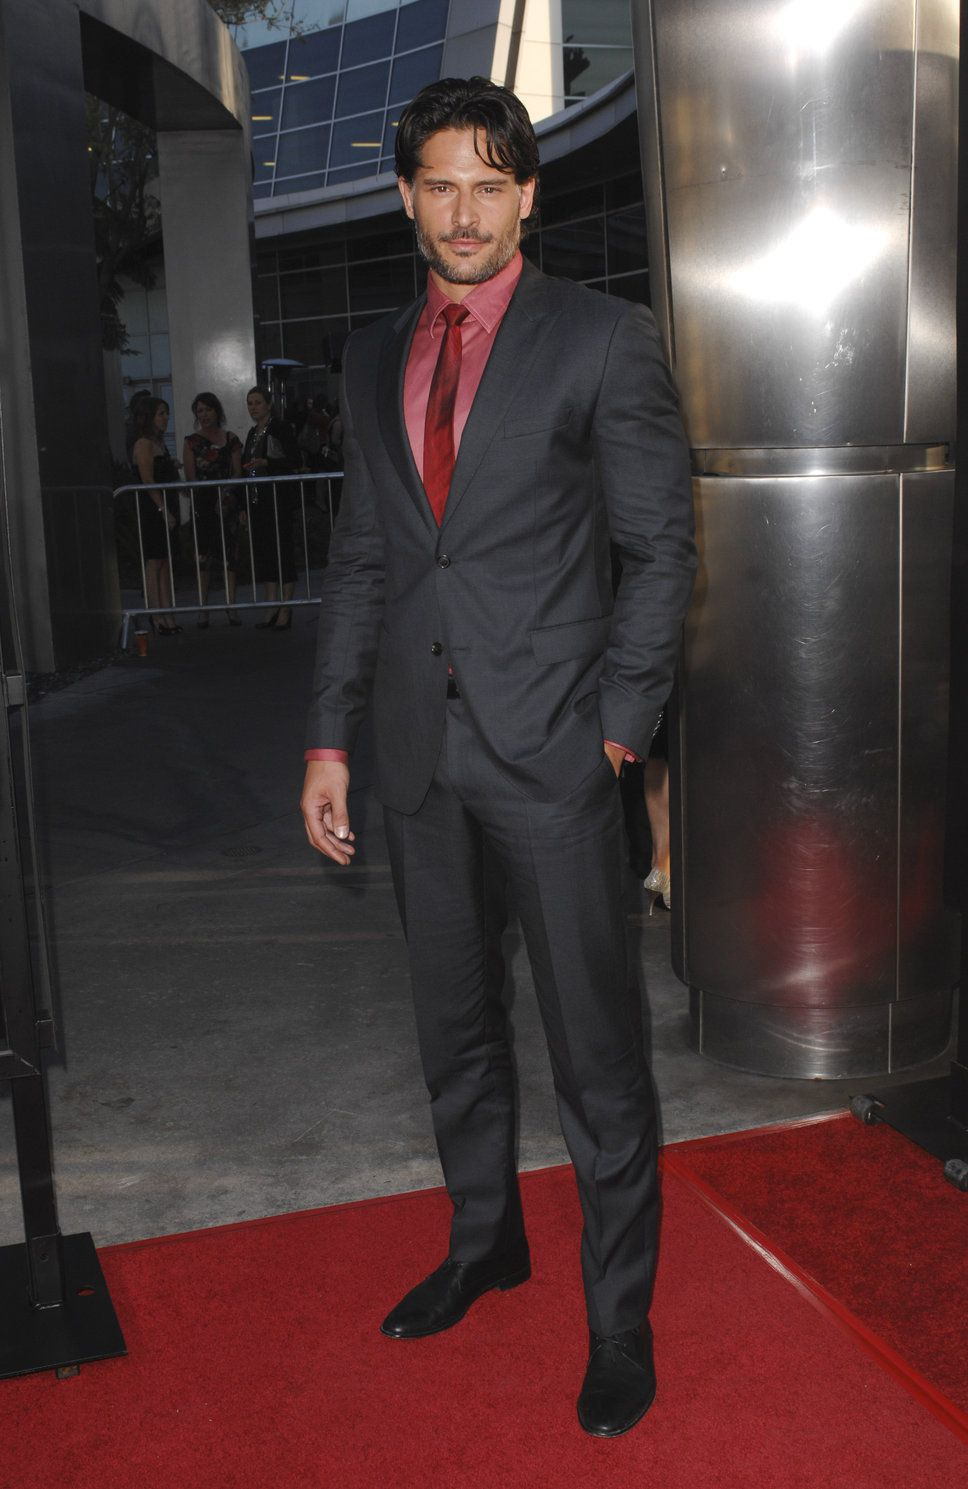 Joe Manganiello Pink Shirt Black Suit Red Tie With Images